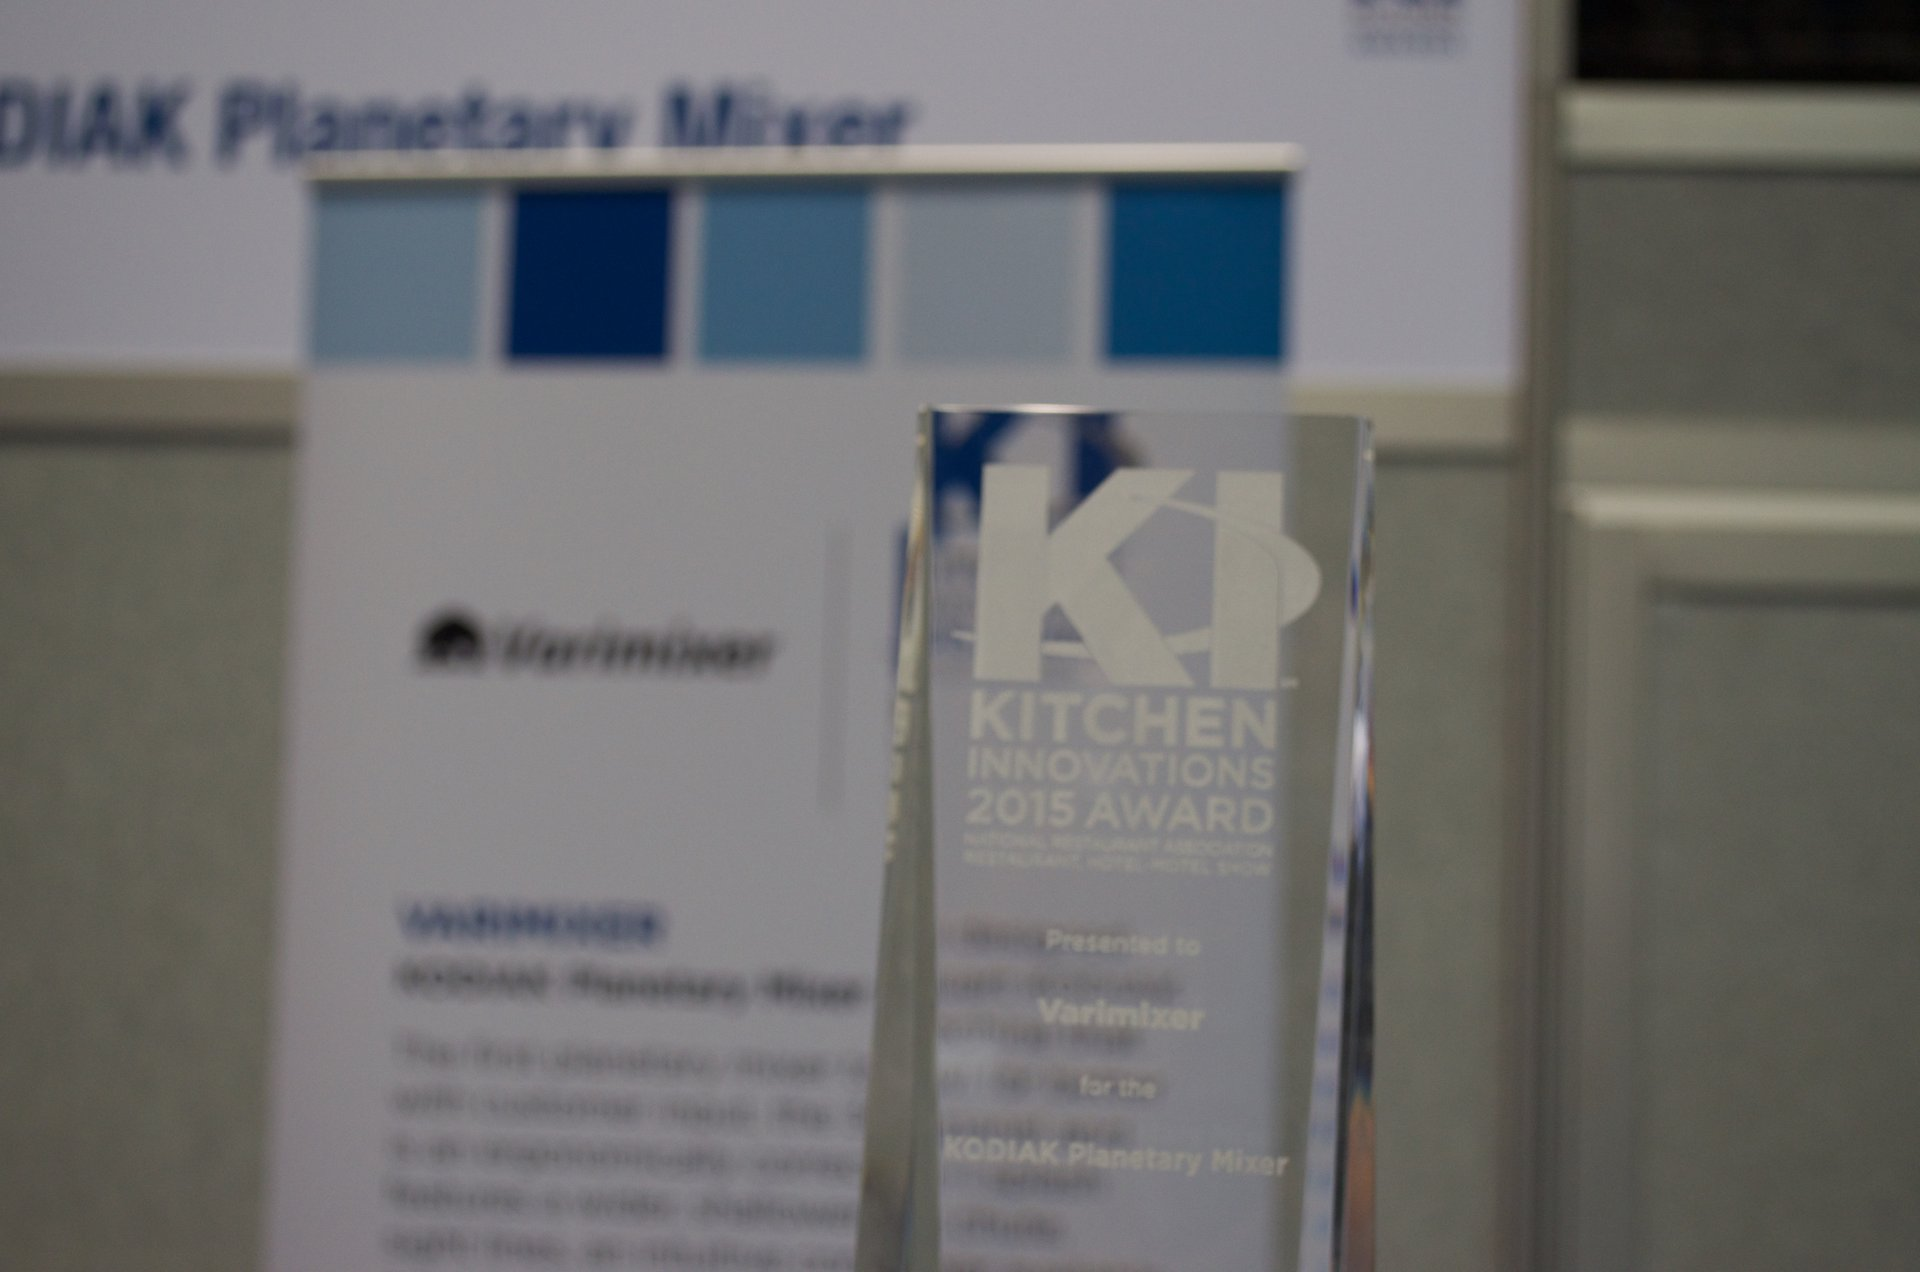 nra awarded 23 trophies this year for its kitchen innovation awards - Kcheninnovationen 2015